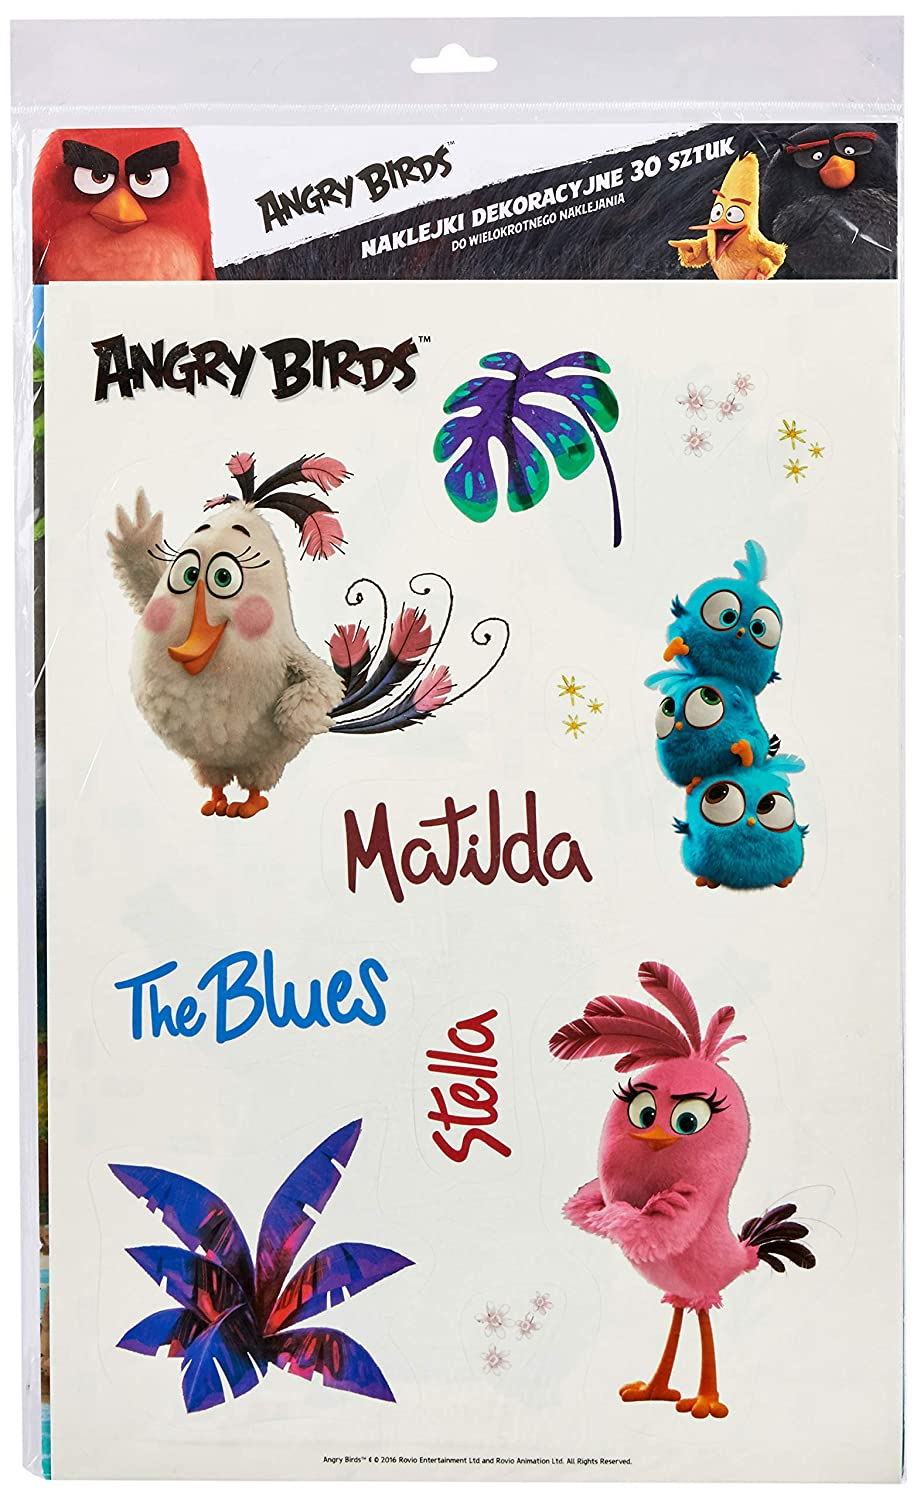 Interdruk Naka3abm Stickers A3 Angry Birds Movie, Multicolore Interdruk SA Interdruk_NAKA3ABM